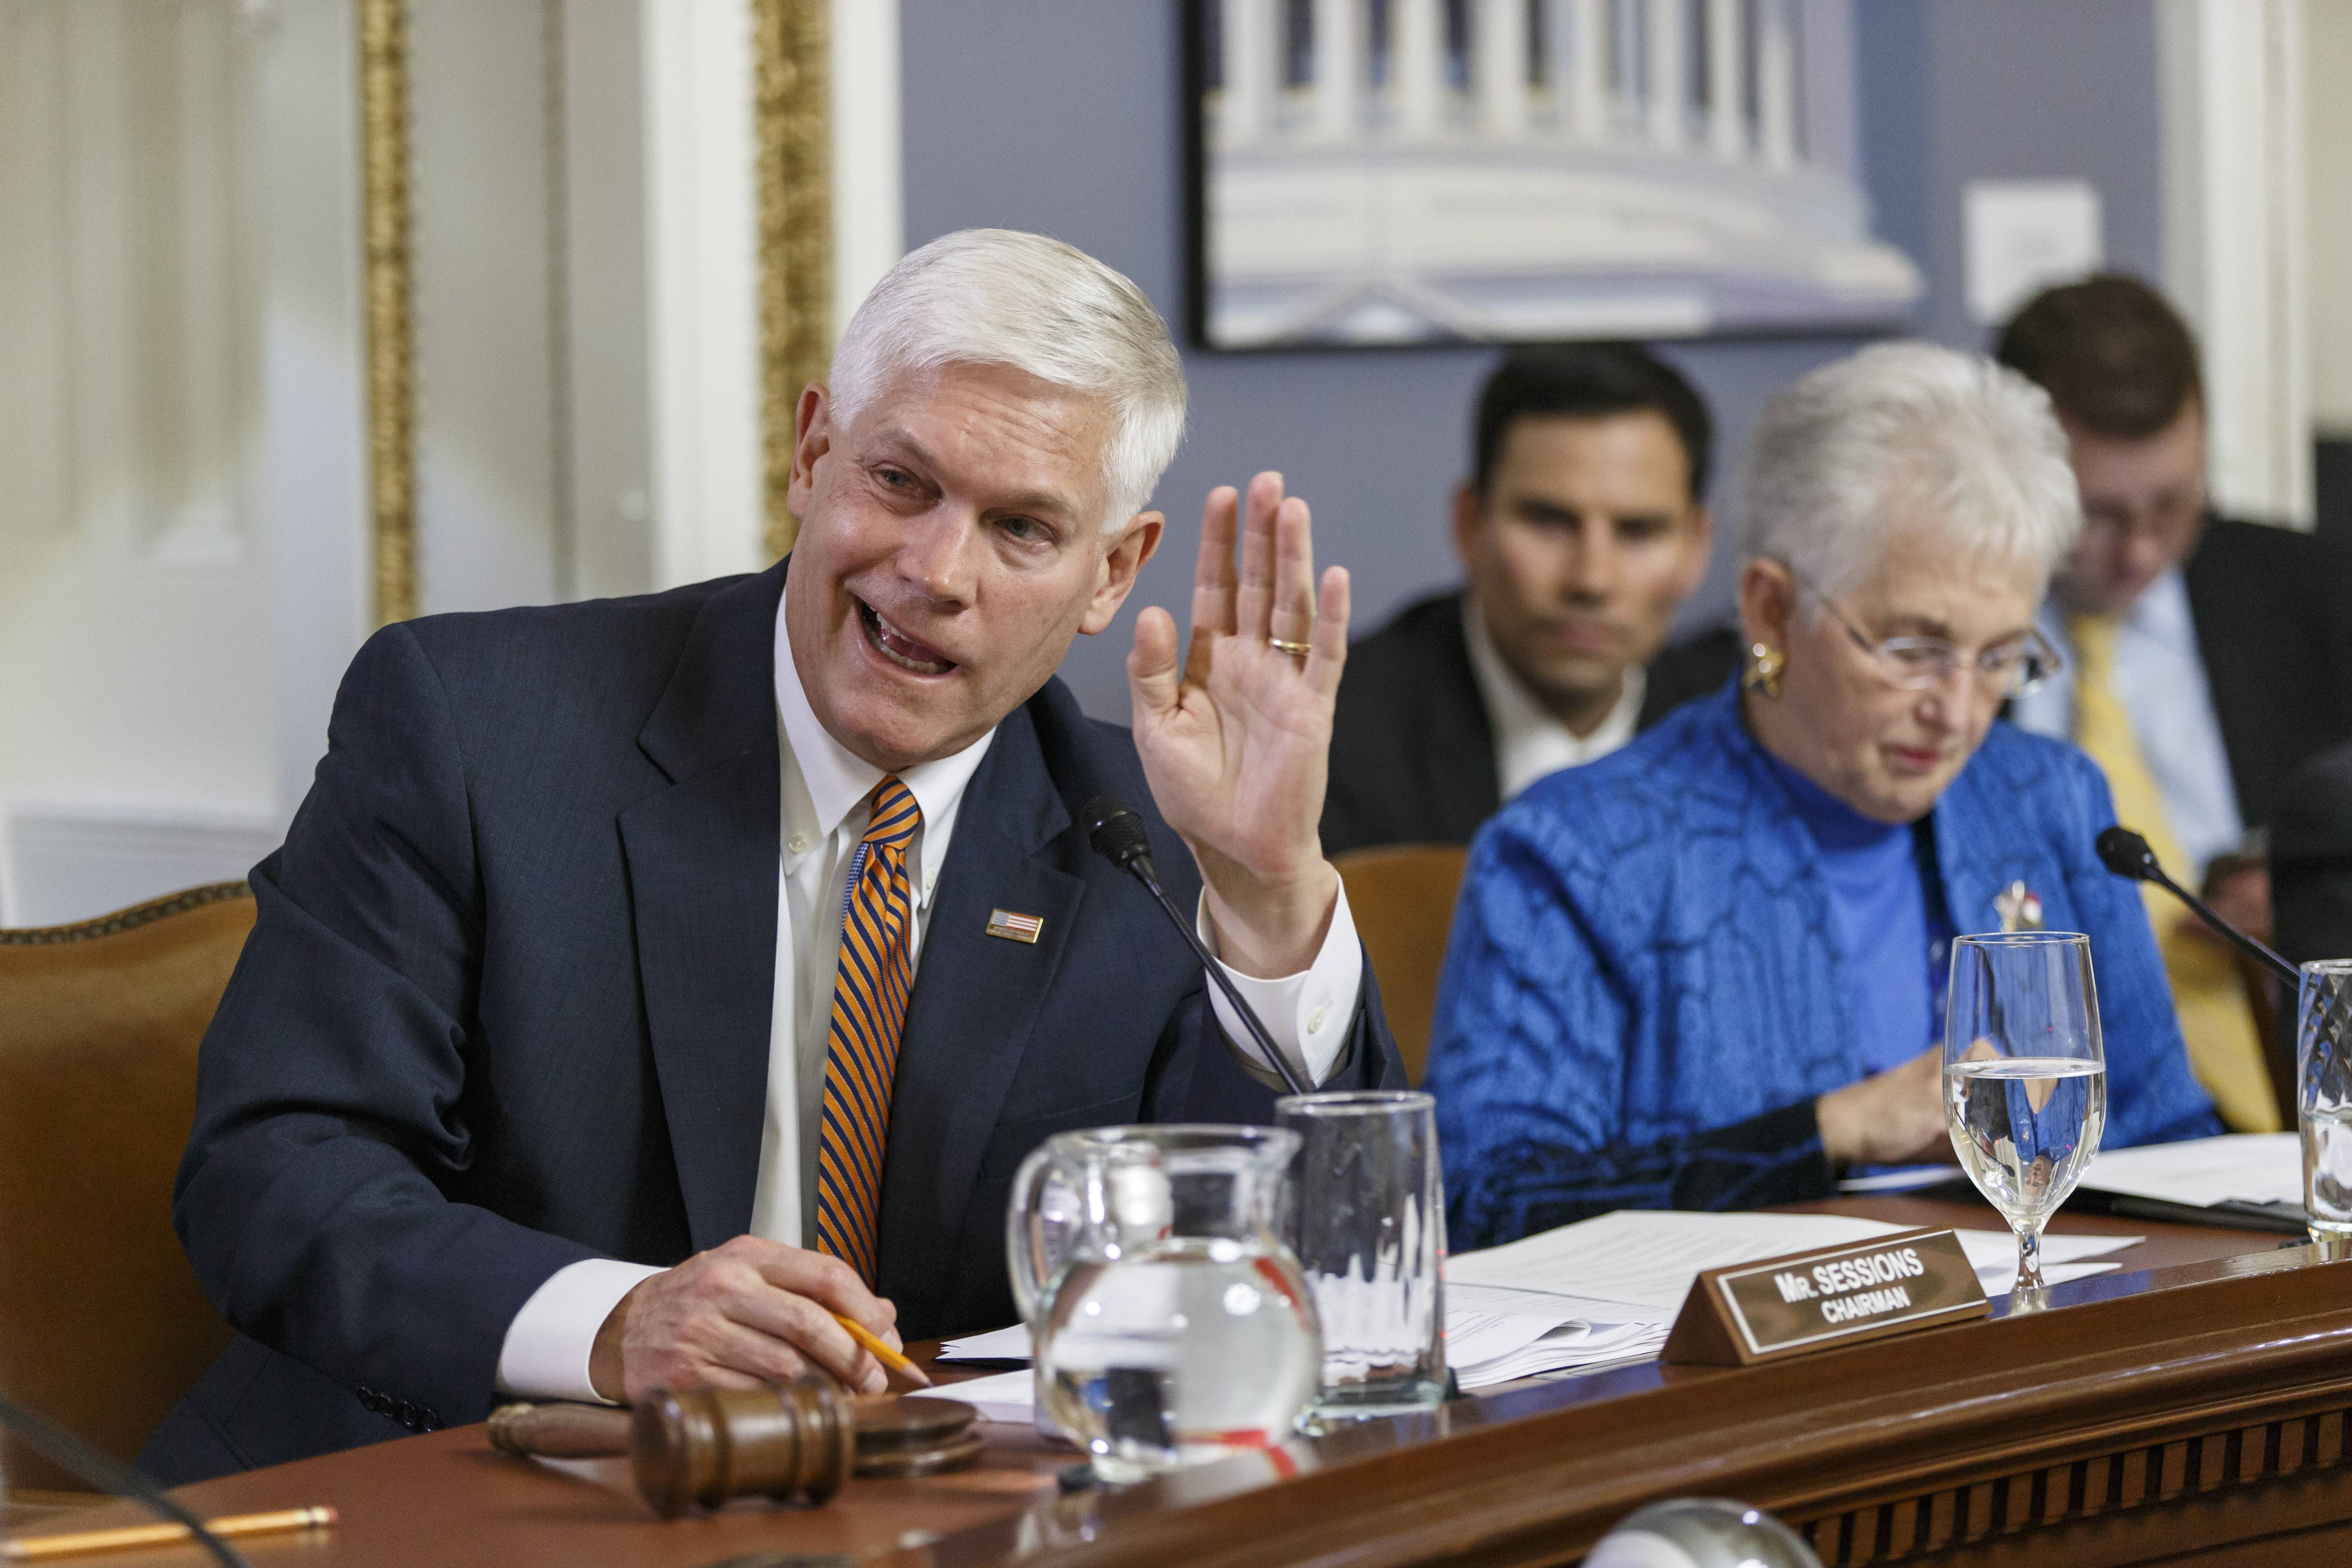 House Rules Committee Chairman Pete Sessions, a Texas Republican, joined at right by Rep. Virginia Foxx, a North Carolina Republican, responds to a point from Democrats on the panel as lawmakers work on the creation of a special select committee to investigate the 2012 attack on the U.S. diplomatic outpost in Benghazi, Libya.